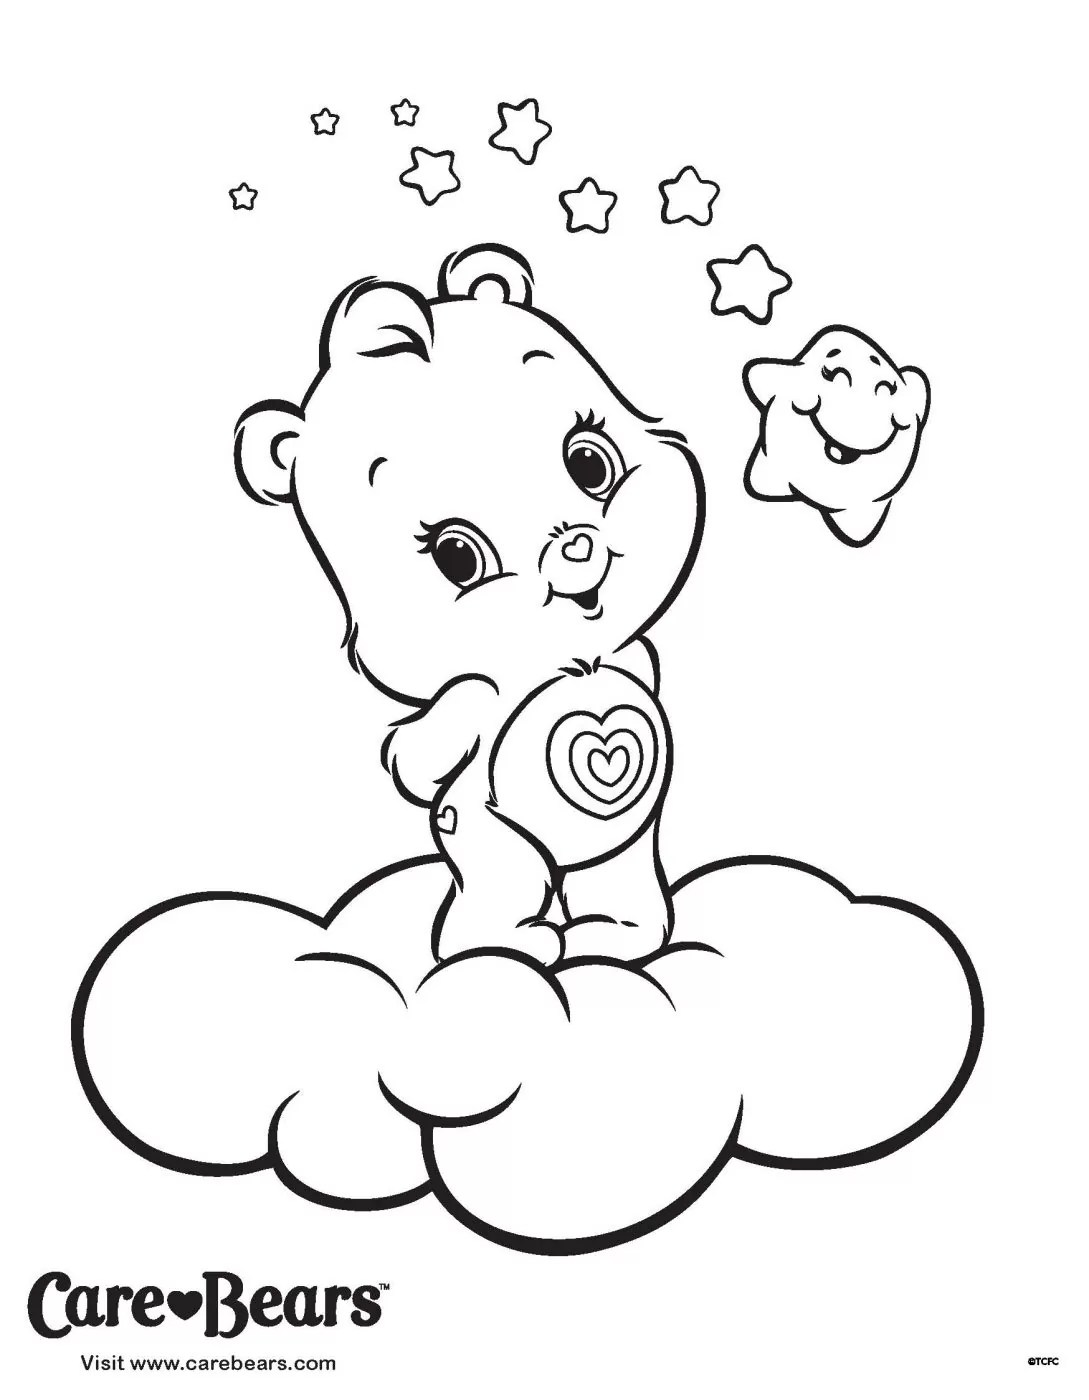 CB Wonderheart Coloring Page